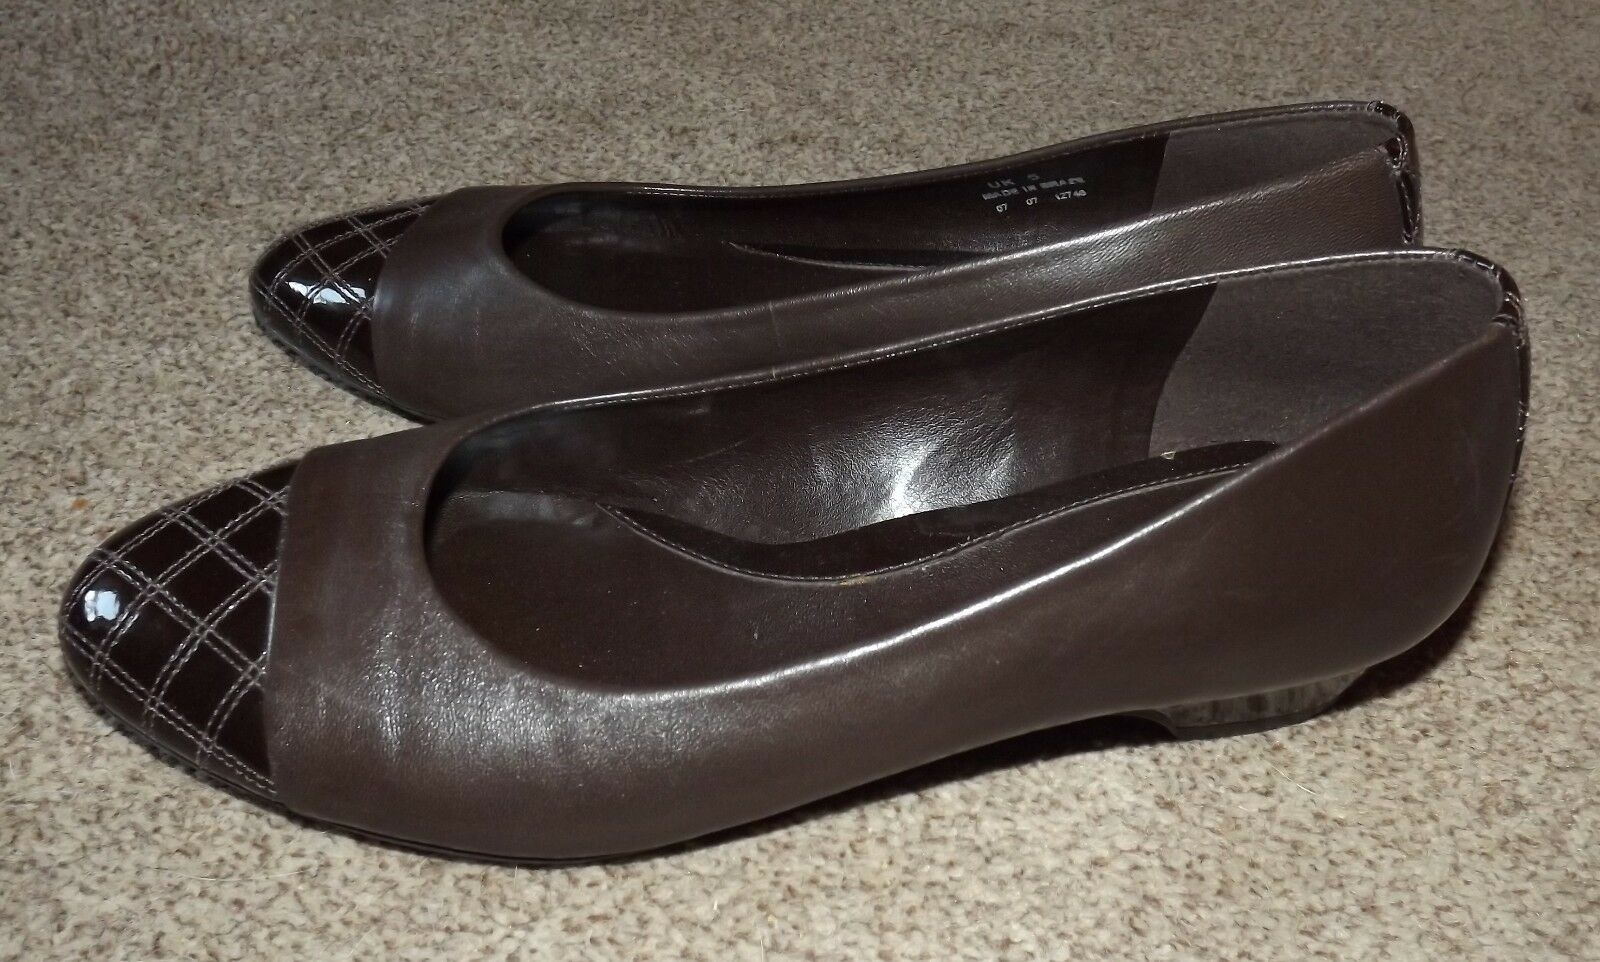 LADIES STYLISH SLIP ON LEATHER  KAYS CLARKS BROWN LEATHER ON / PATIENT  LOW HEEL SHOES 4a16c3